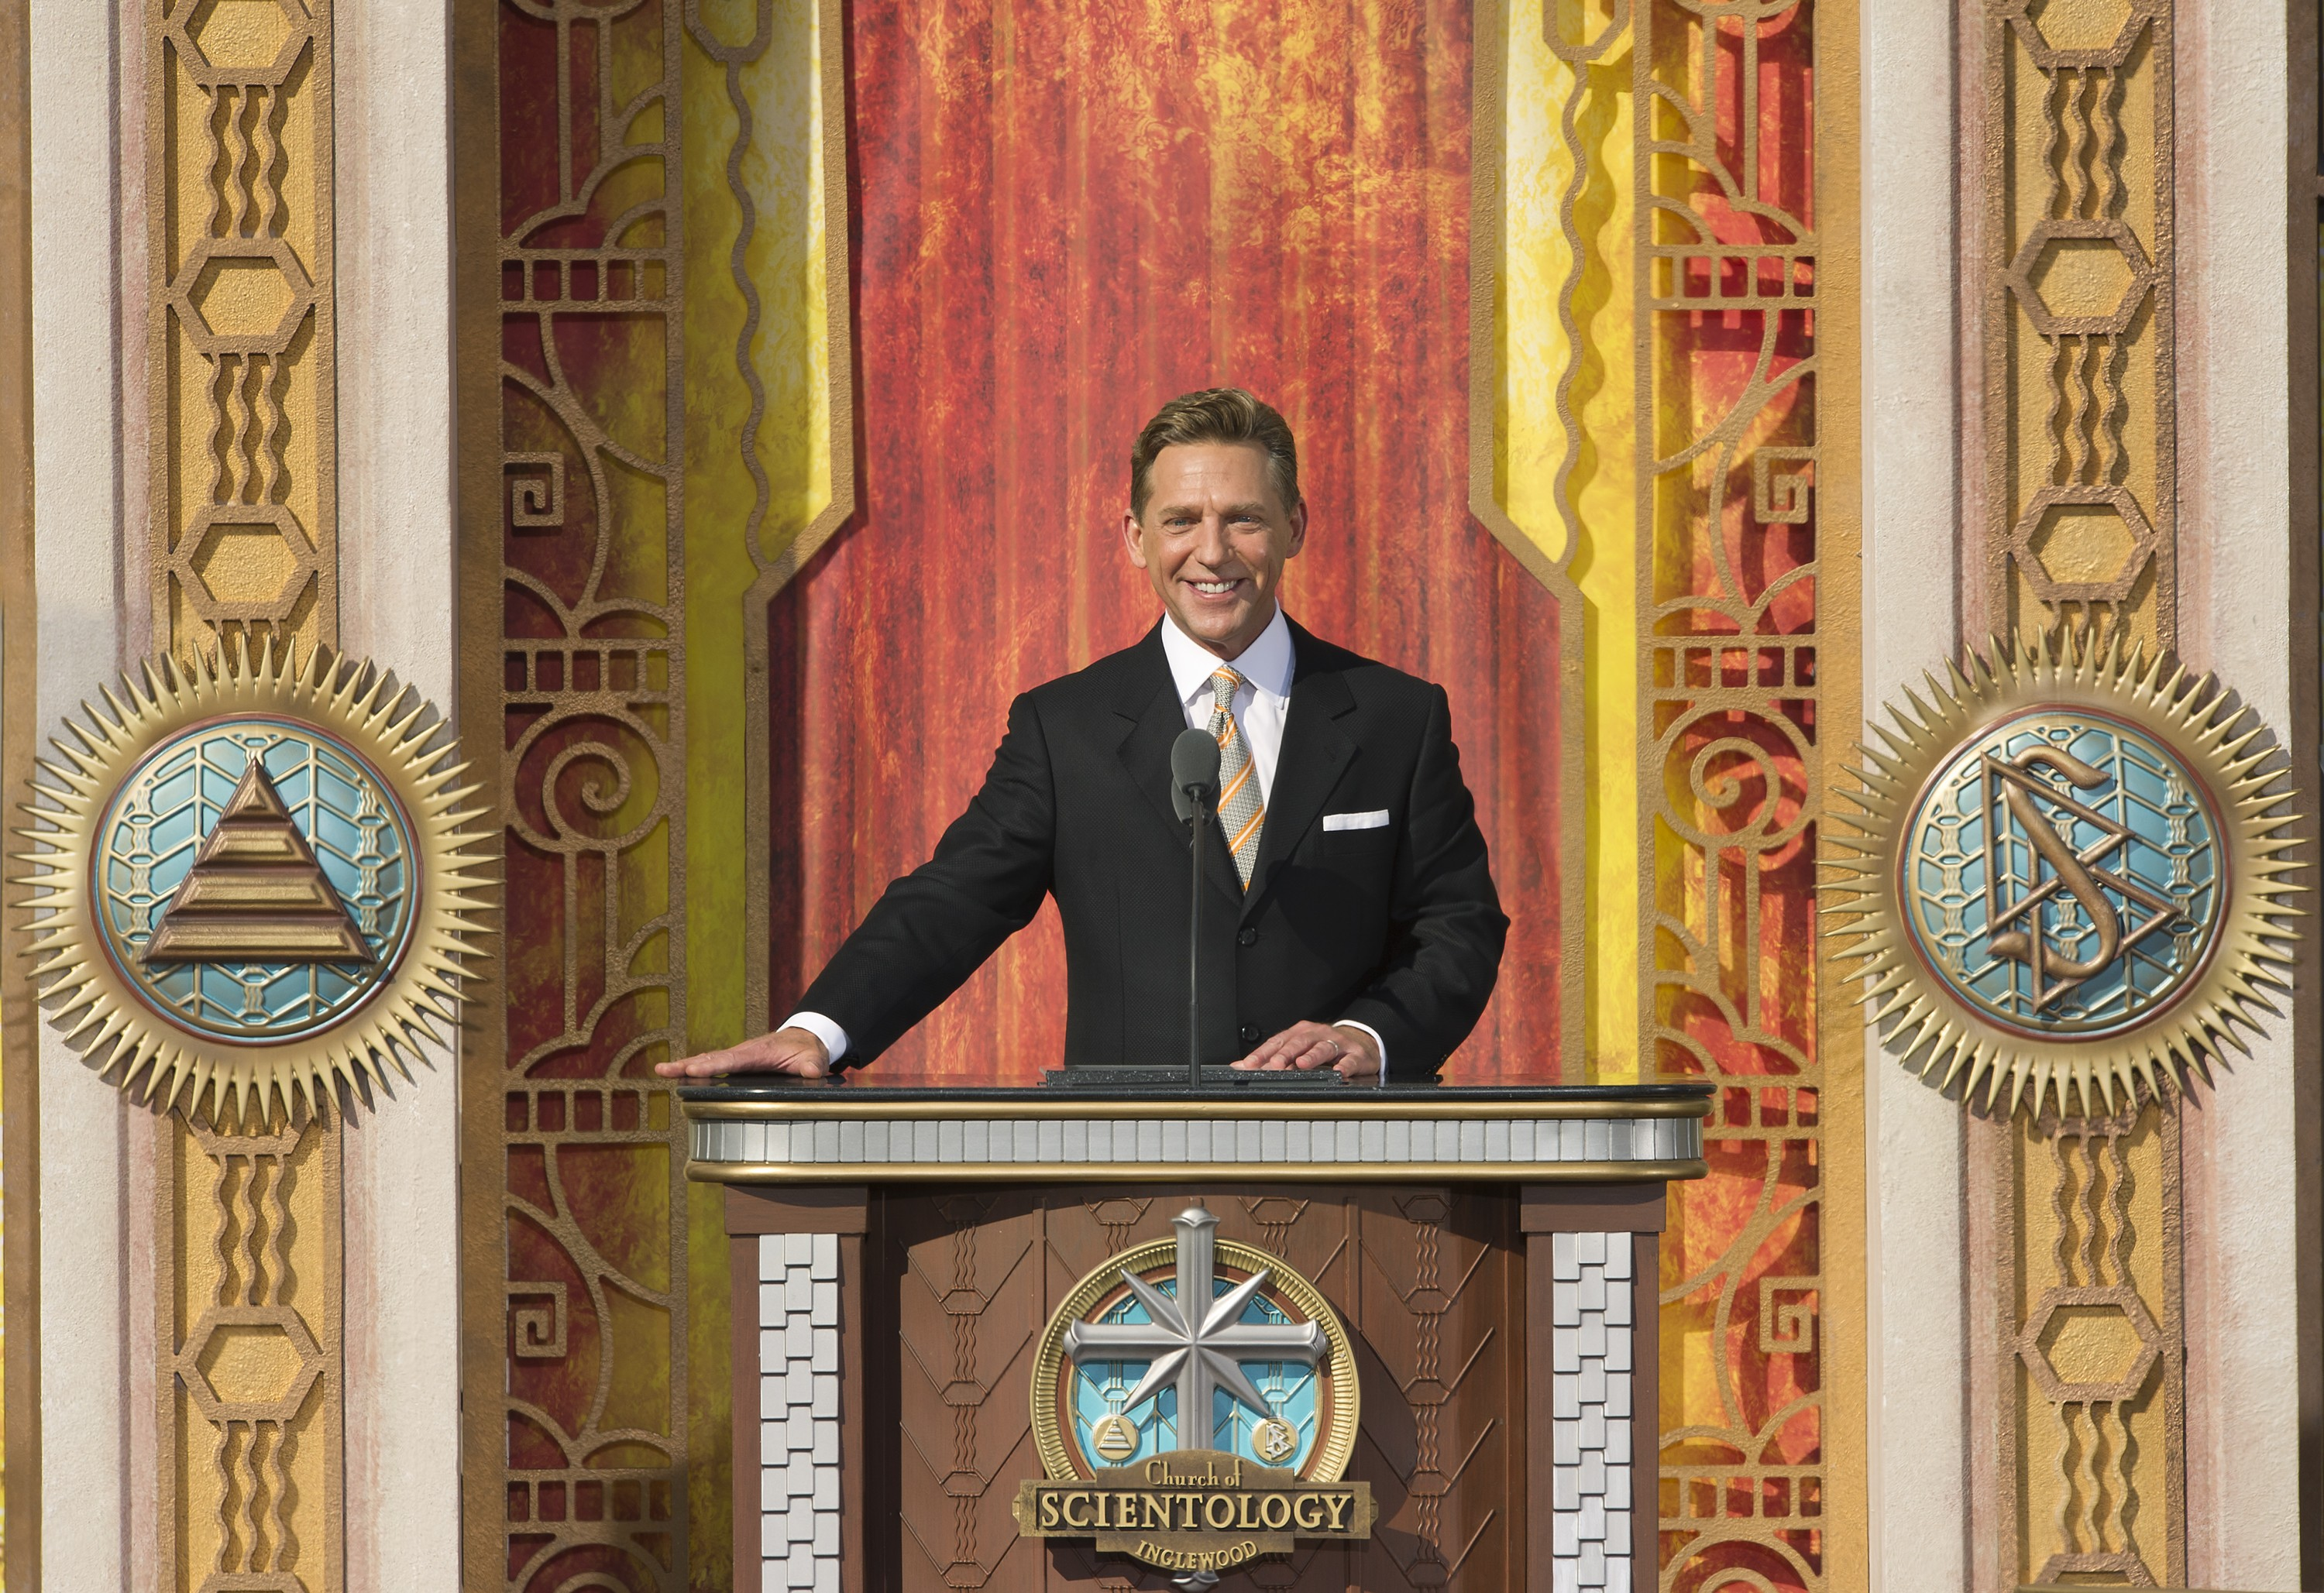 What exactly is scientology, and what are their beliefs?